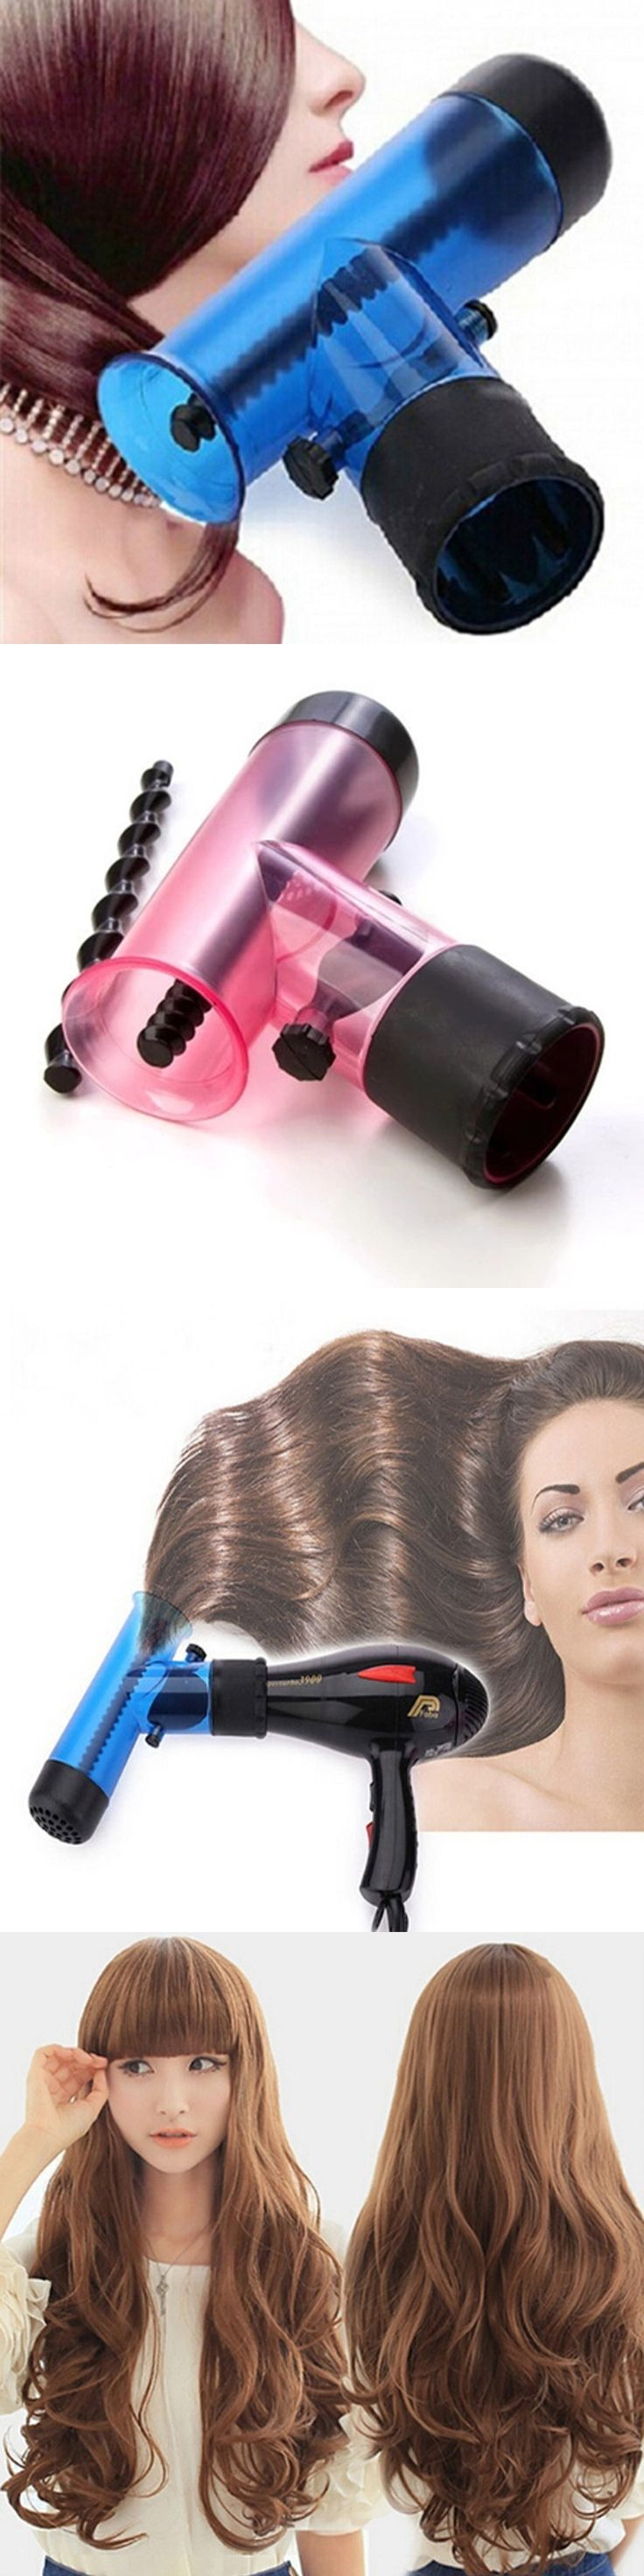 Hair Dryer Diffuser Magic Wind Spin Curl Hair Salon Styling Tools Hair Roller Curler Make Hair Curly  0502 Without Damage